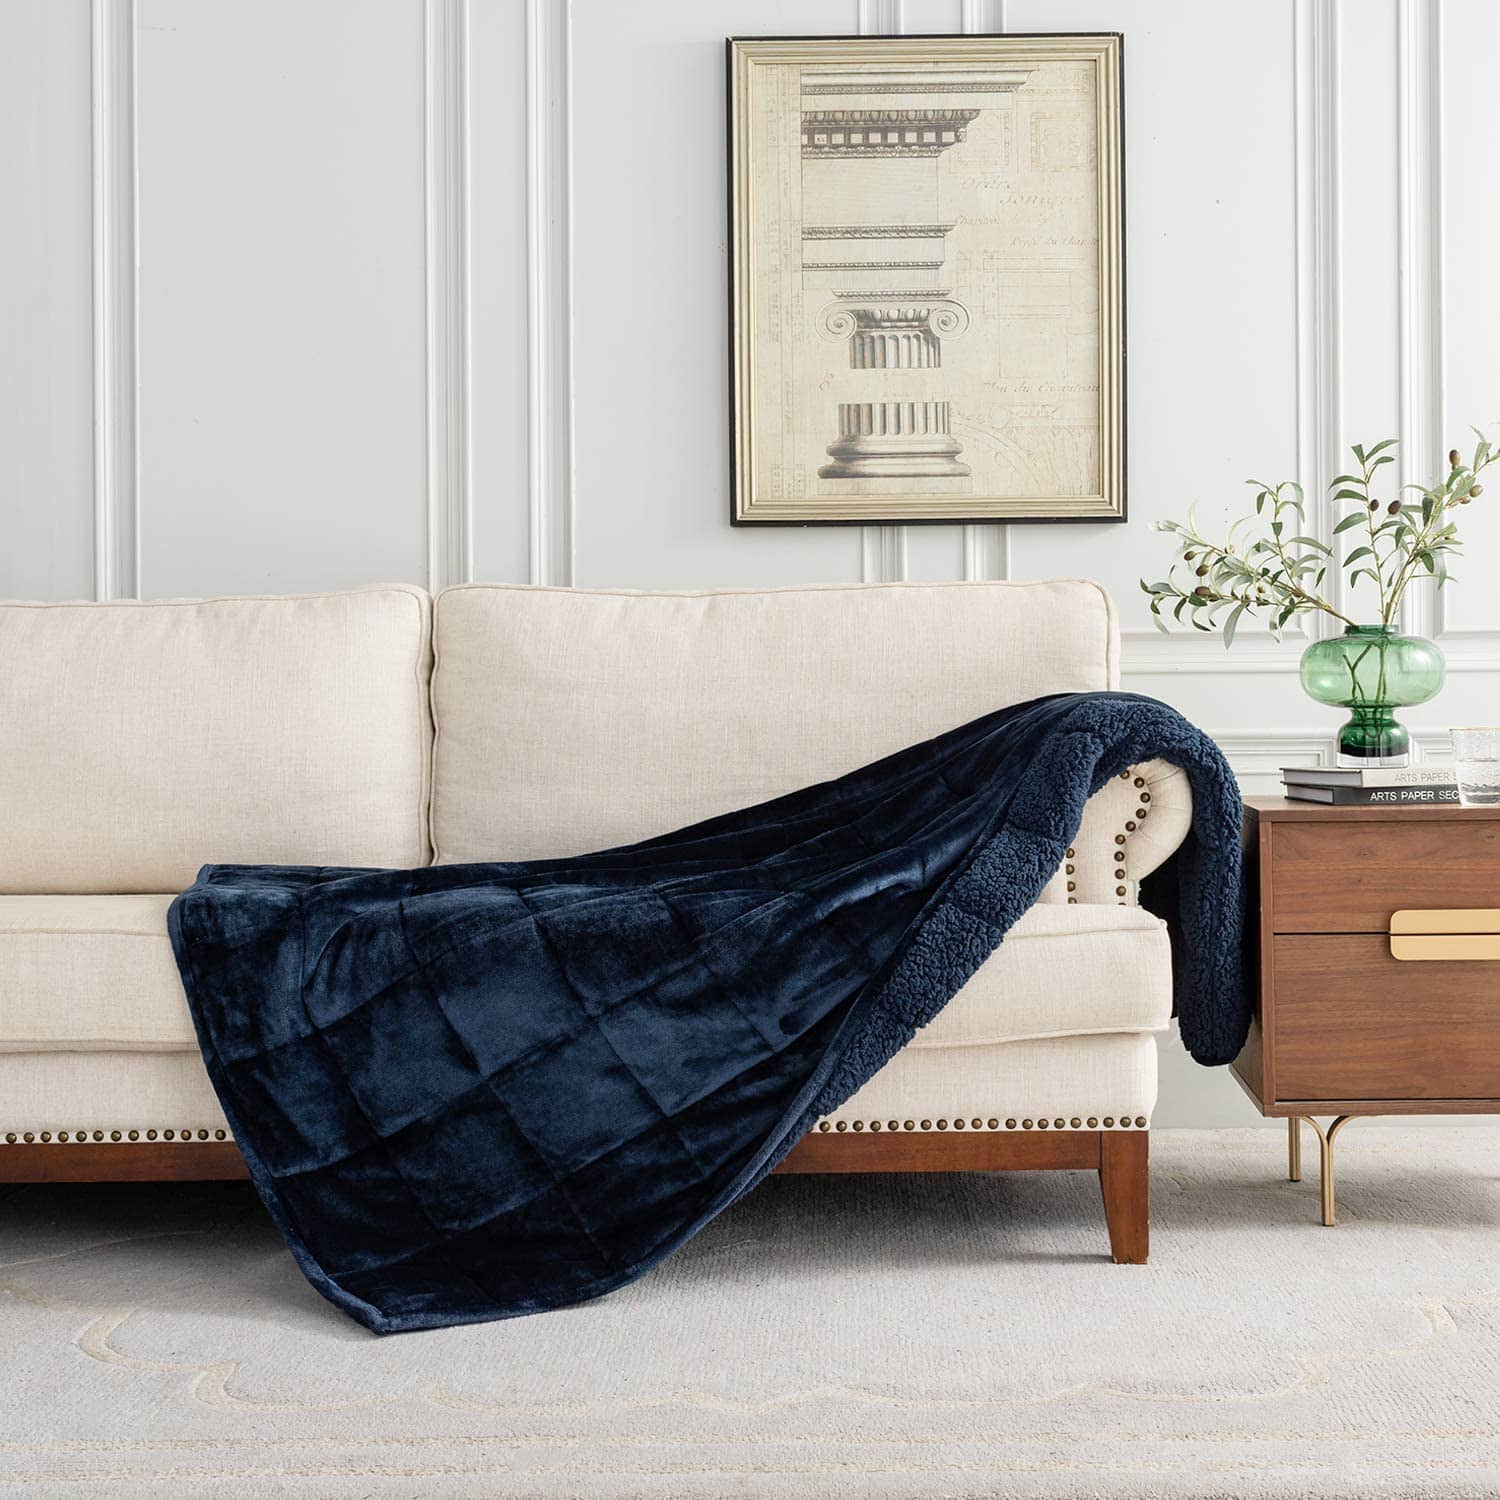 """BUZIO New Unicolor Sherpa Fleece Weighted Blanket 48""""x72"""" 15lbs for $29.99 + Free Shipping"""